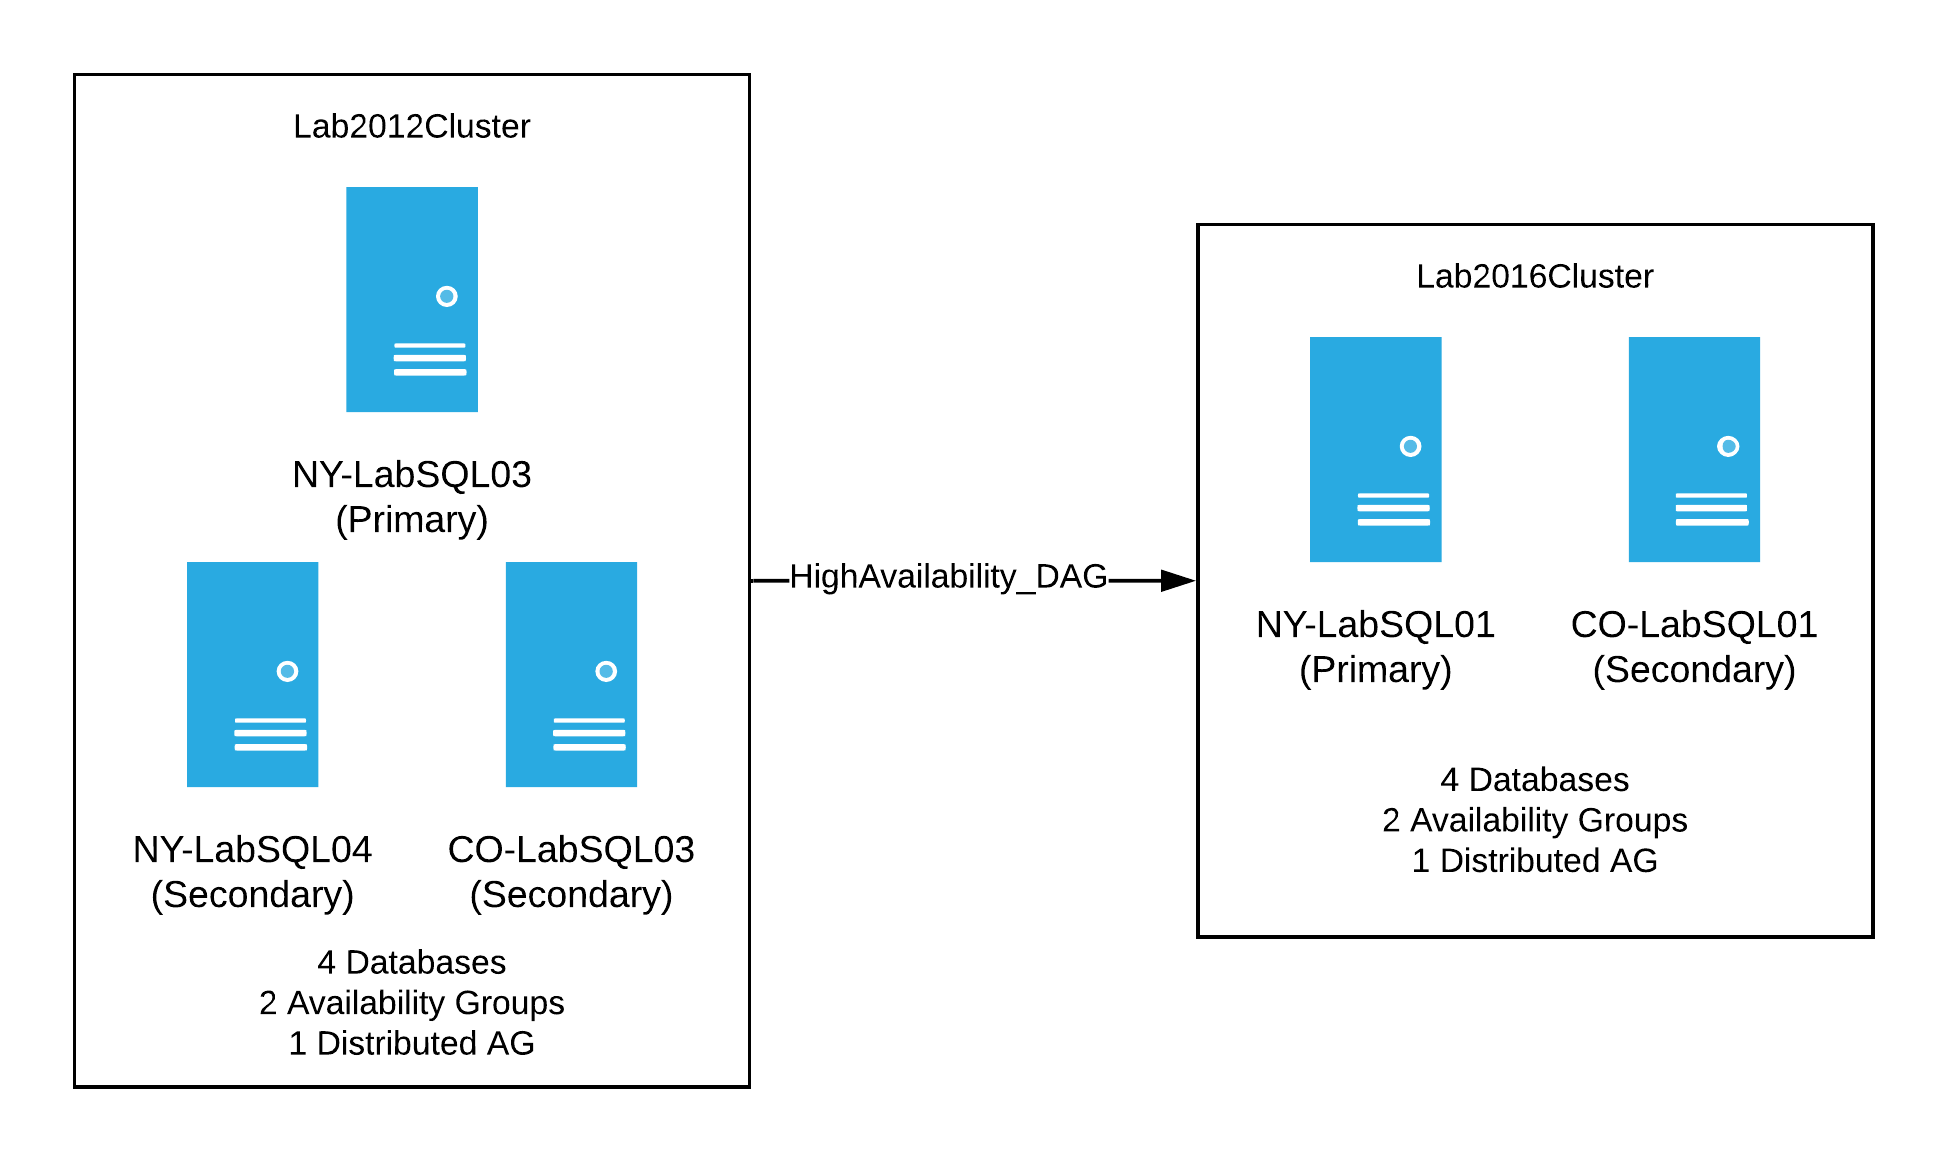 Lab Cluster - 2012 to 2016